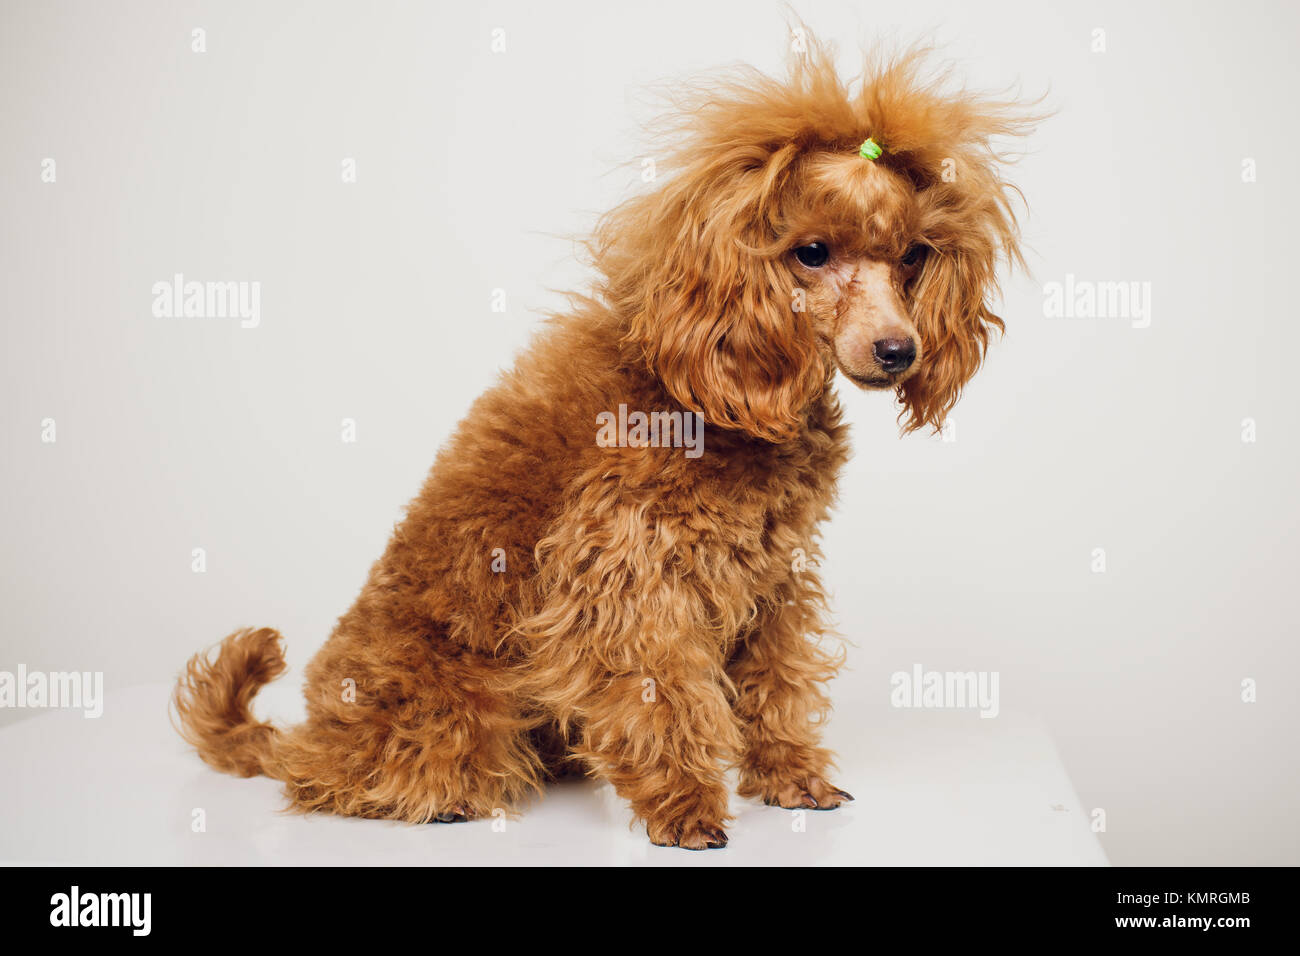 Beautiful Fur Brown Adorable Dog - adorable-mini-toy-poodle-with-golden-brown-fur-on-a-white-background-KMRGMB  Image_311310  .jpg